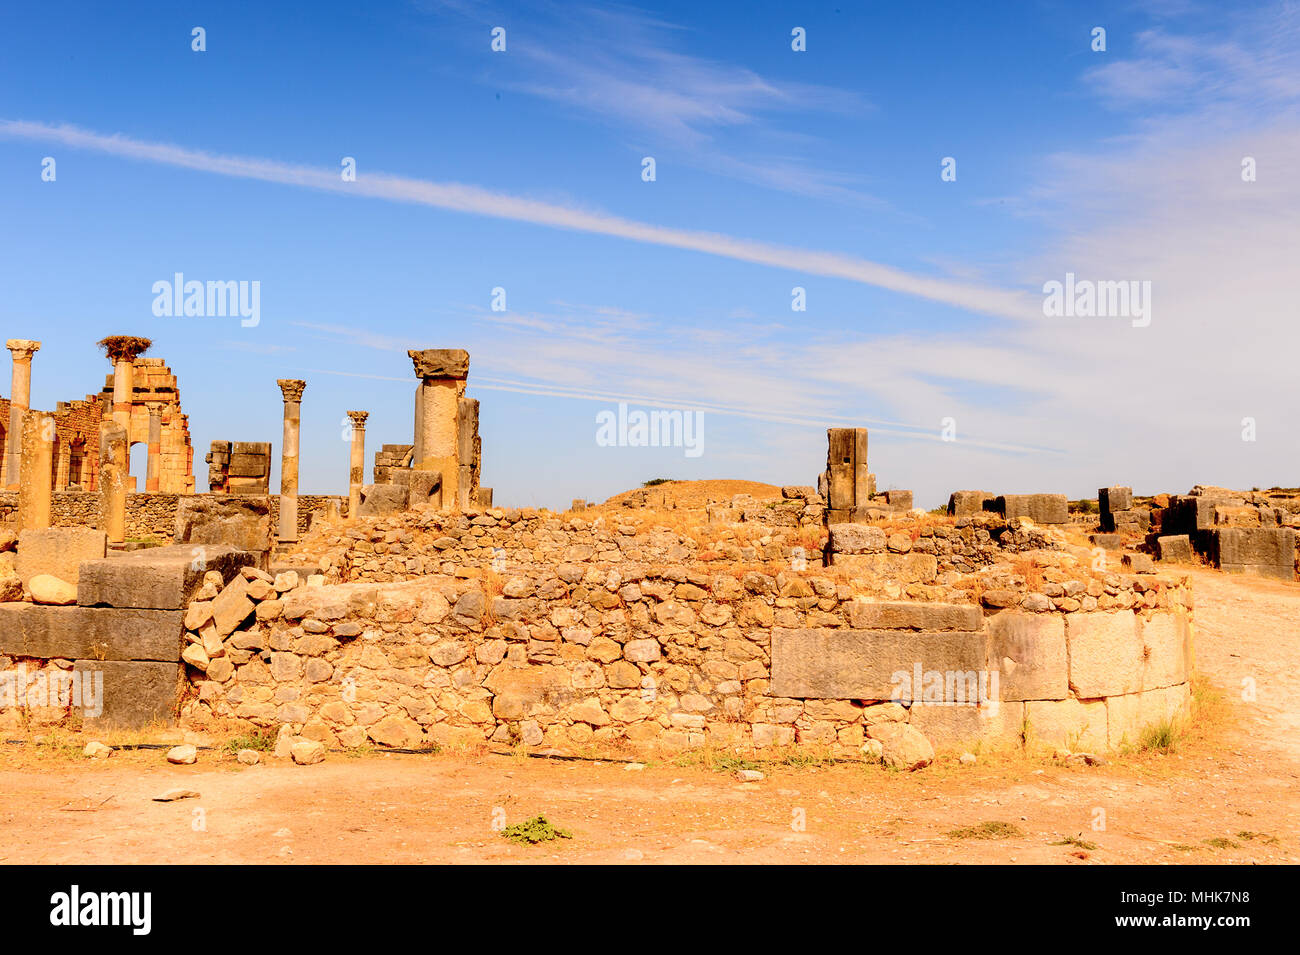 Volubilis, an excavated Berber and Roman city in Morocco, ancient capital of the kingdom of Mauretania. UNESCO World Heritage Stock Photo